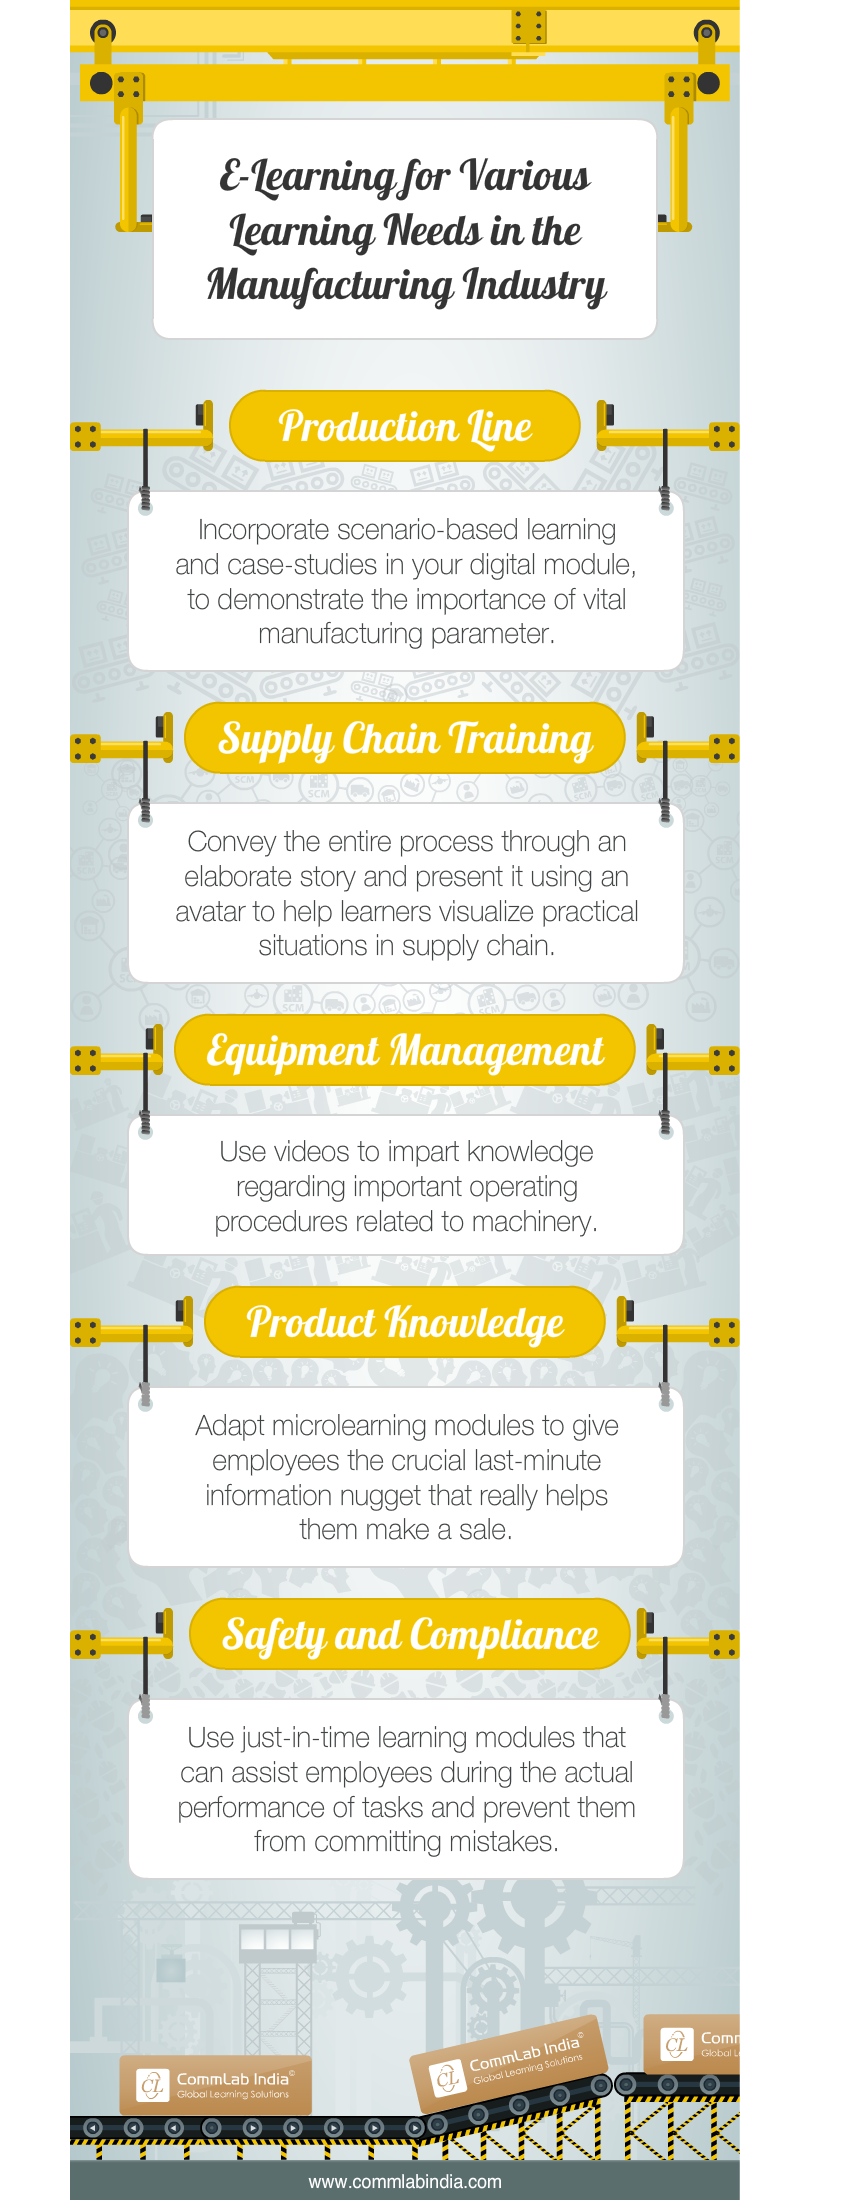 E-Learning for Various Learning Needs in the Manufacturing Industry [Infographic]